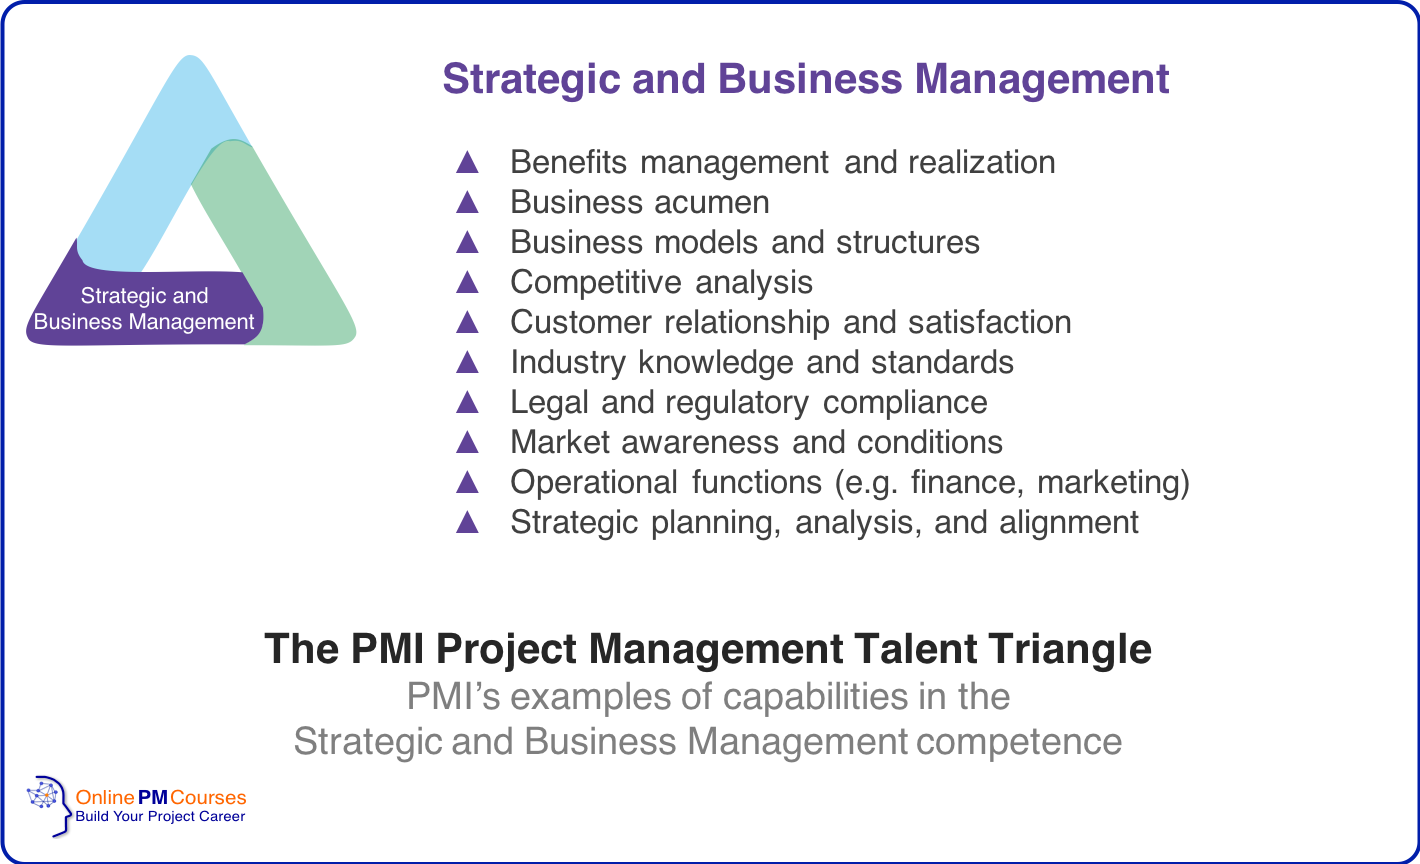 The PMI Project Management Talent Triangle - Strategy and Business Management